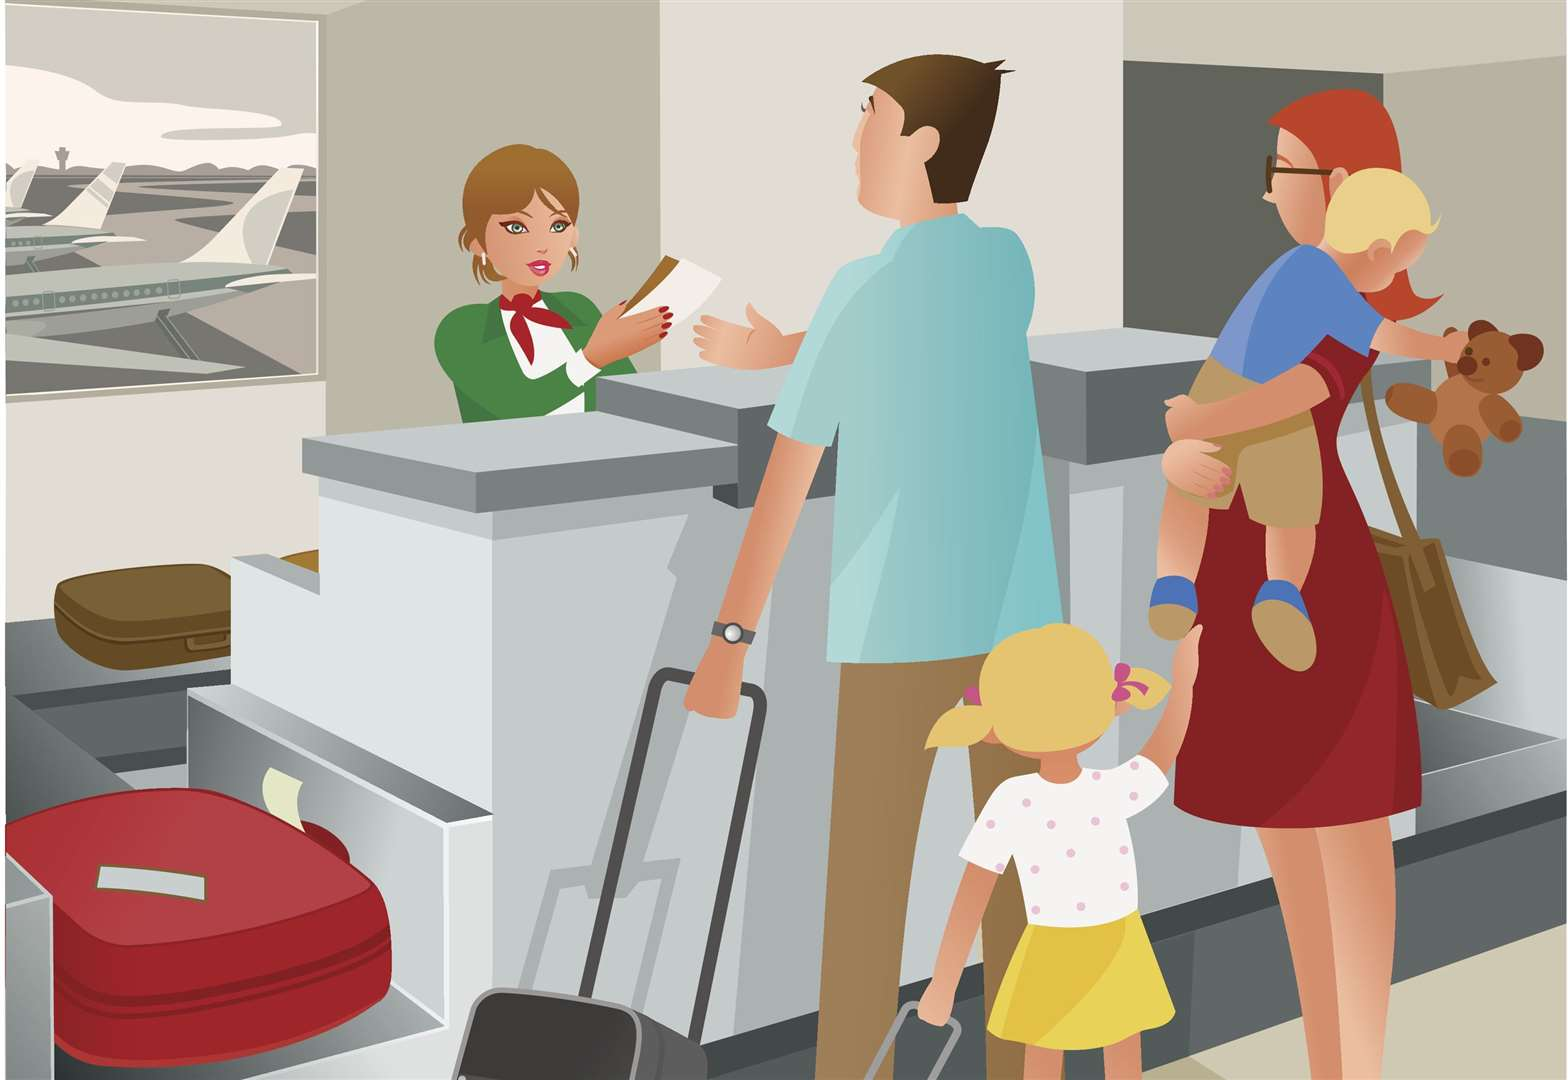 Mama Said: What's it like on a long haul flight with two small children?